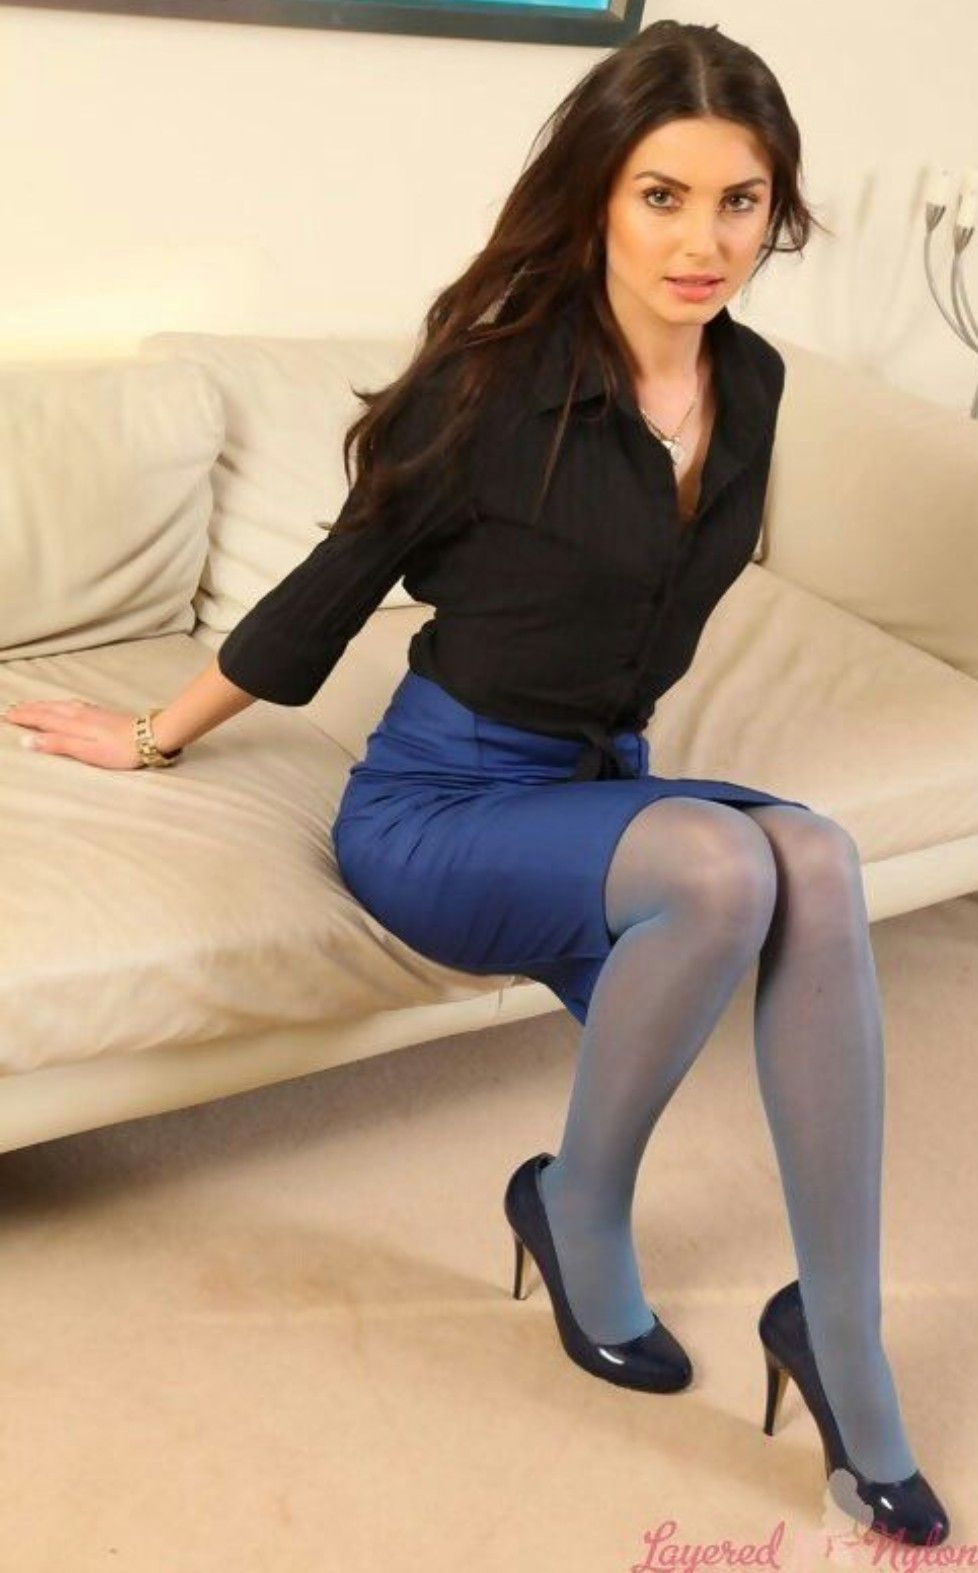 In blue pantyhose